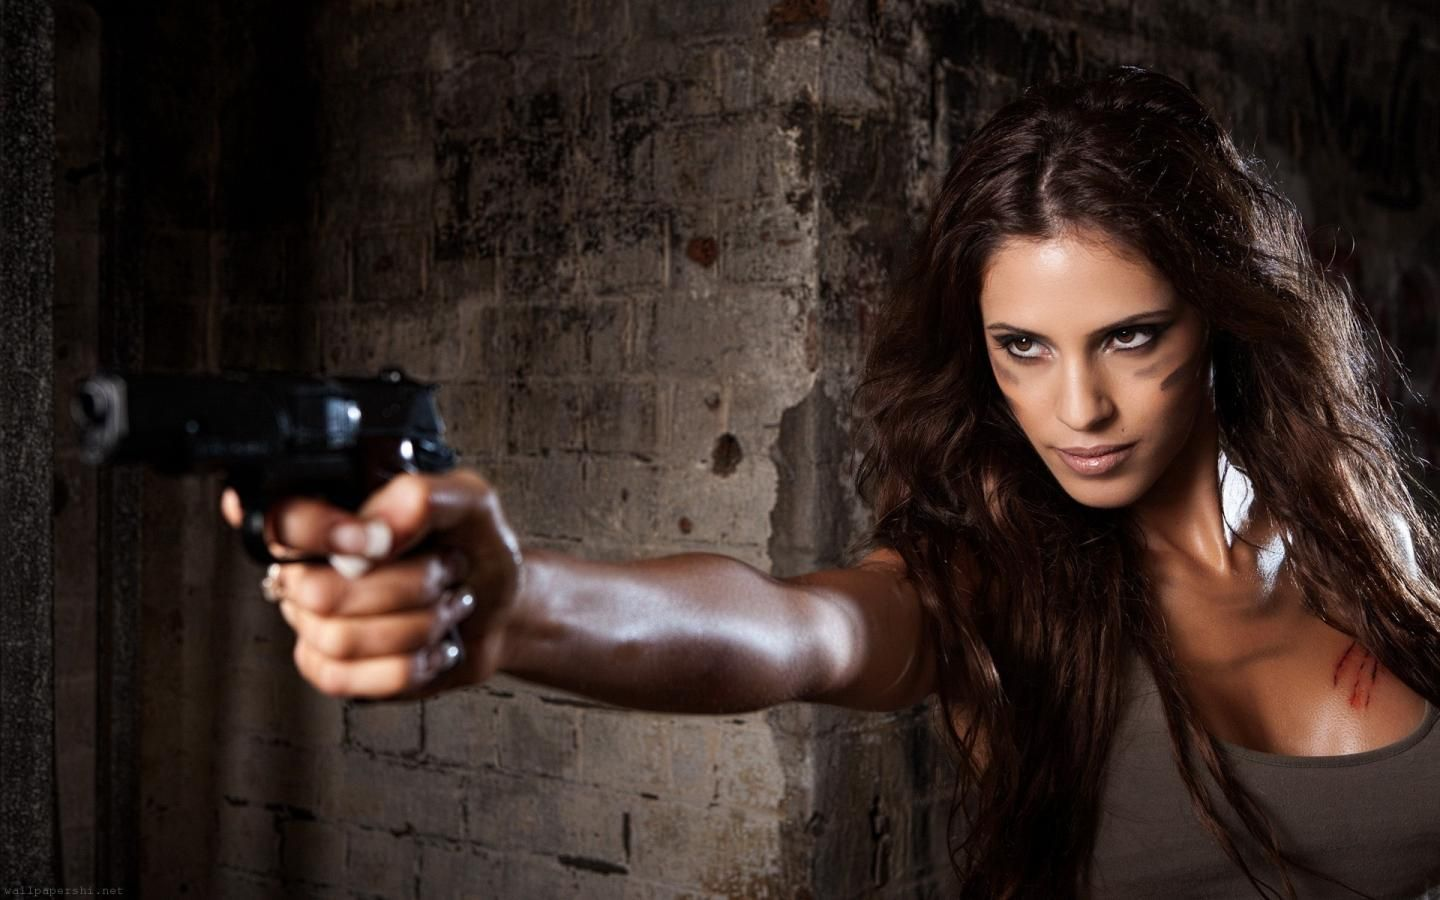 Images for gt girl gun wallpaper wallpaper girls with guns g images for gt girl gun wallpaper wallpaper girls voltagebd Gallery